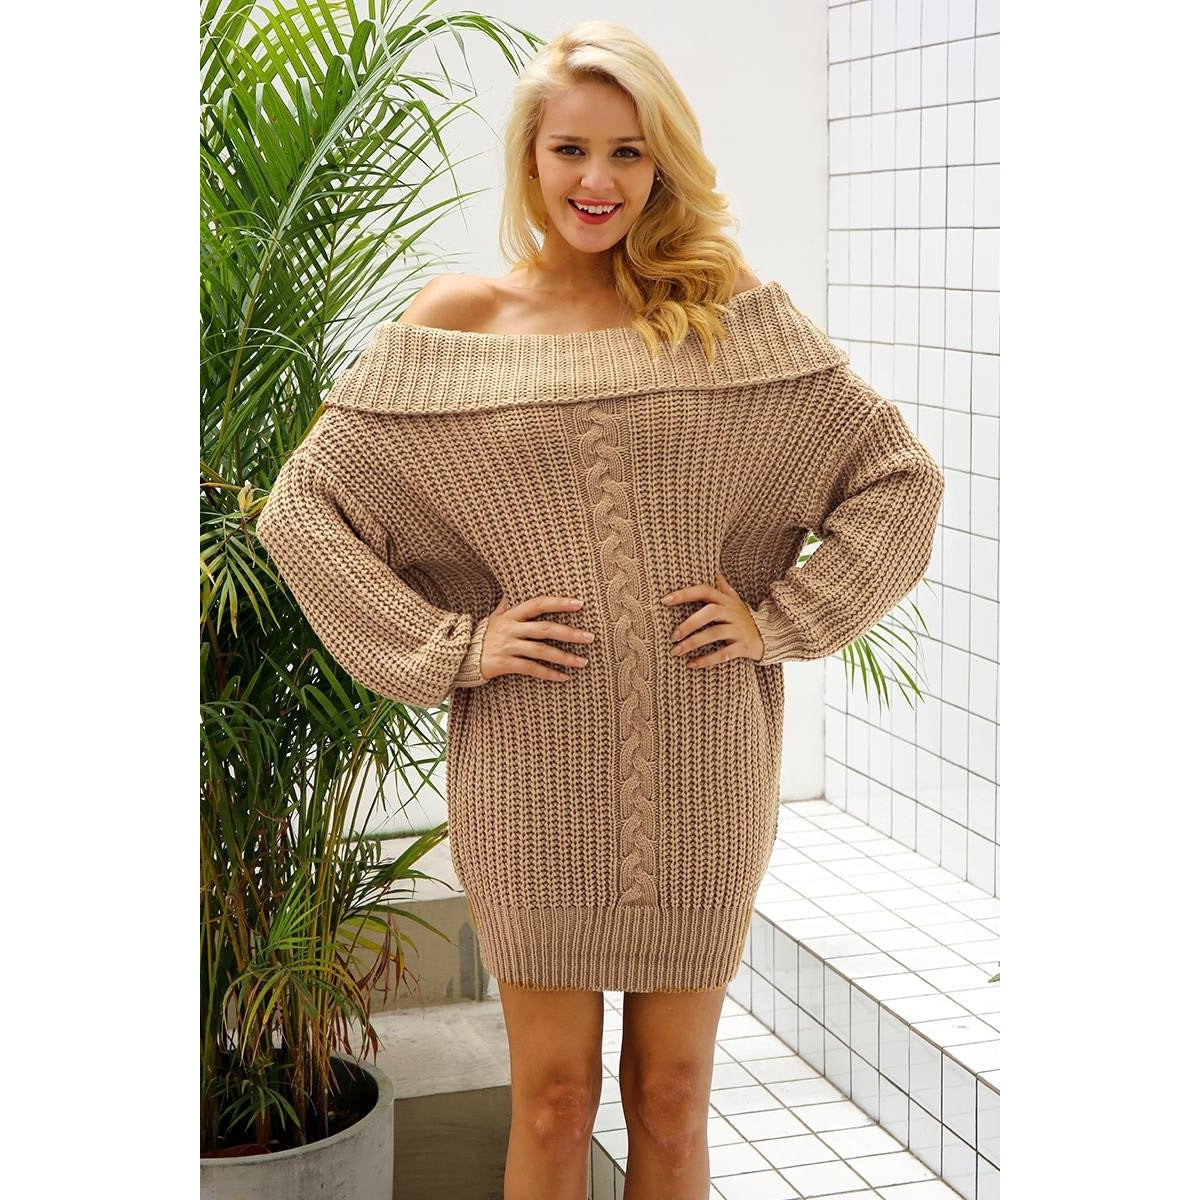 The Amelia Sweater Dress is a one size fits all knit sweater with wide shoulders and hips, plenty of room for stretch and to wear off, cold, or one shoulder style. 2 colors available, khaki and gray.